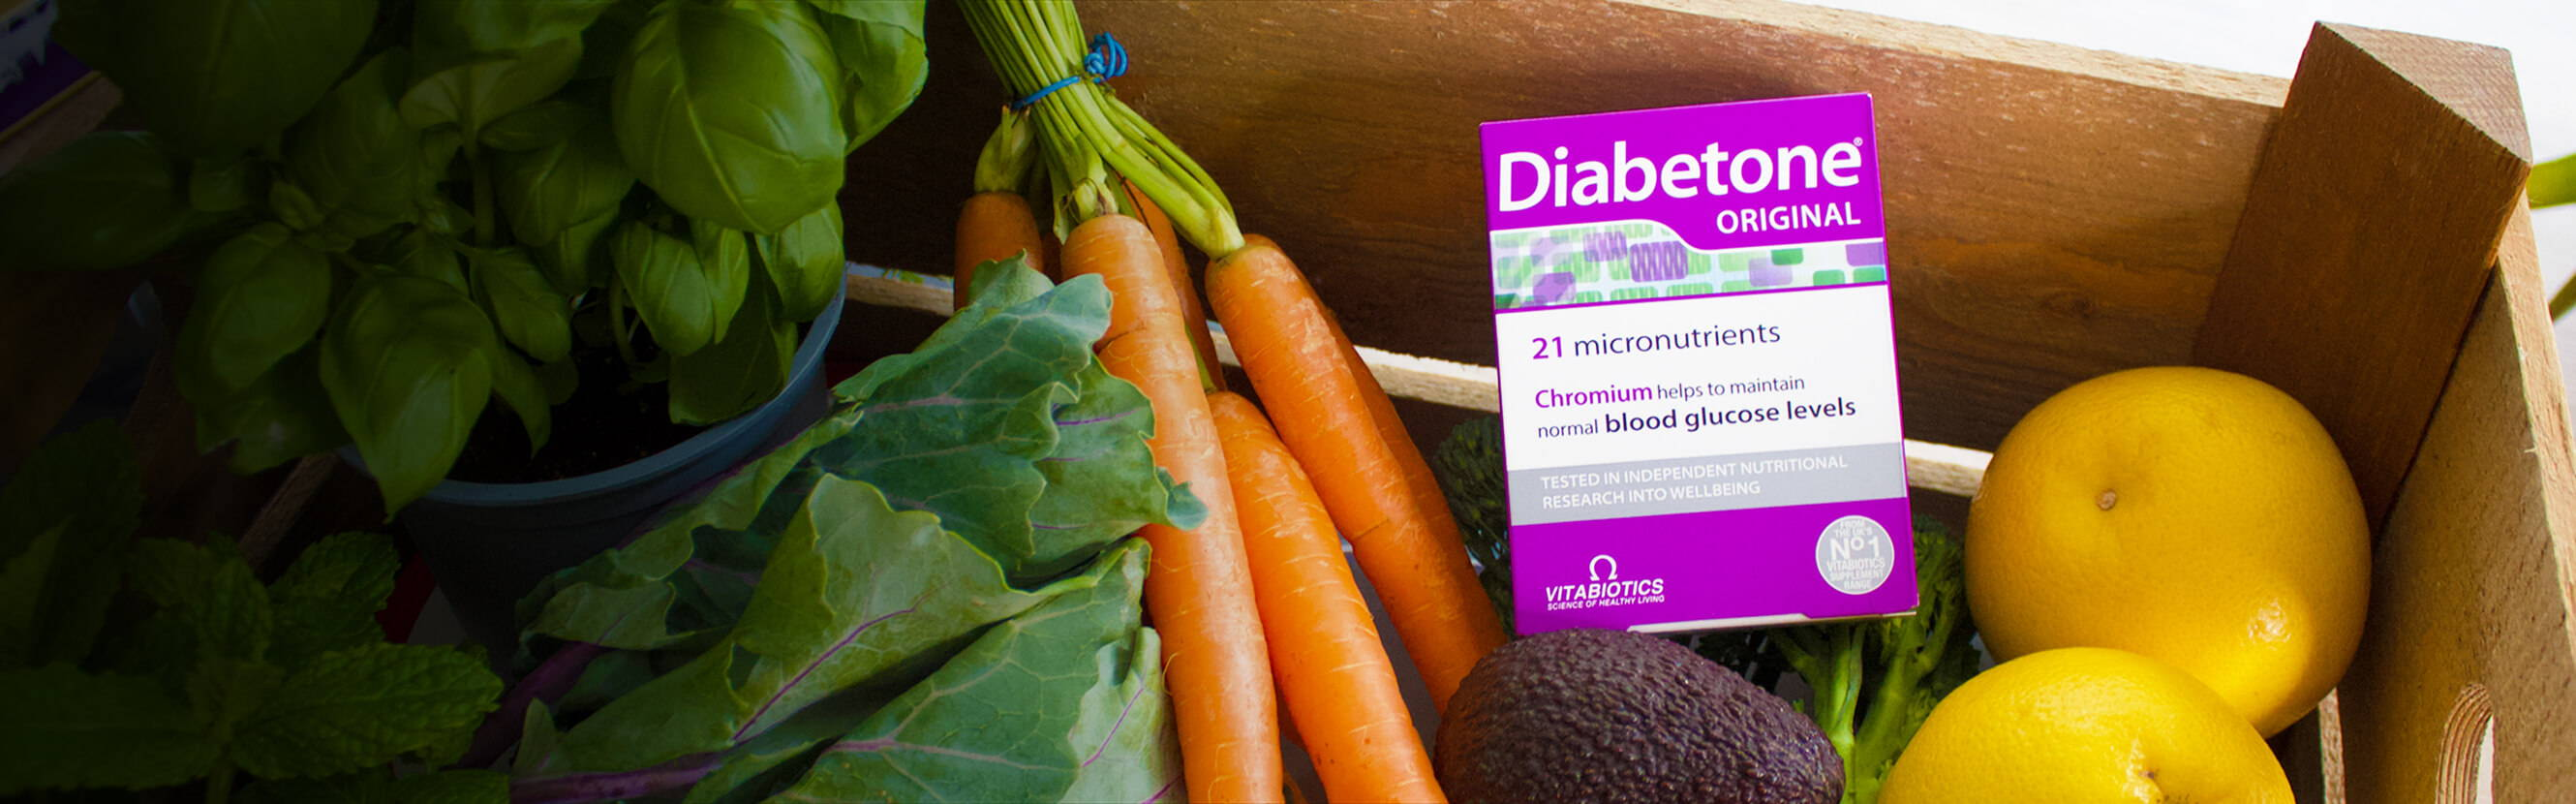 A balanced diet is always at the base of good health – and Diabetone Original is your one-a-day source of 21 essential nutrients including Chromium and B Vitamins. Designed to be comprehensive, its special formulation means there's no need to take another multivitamin.